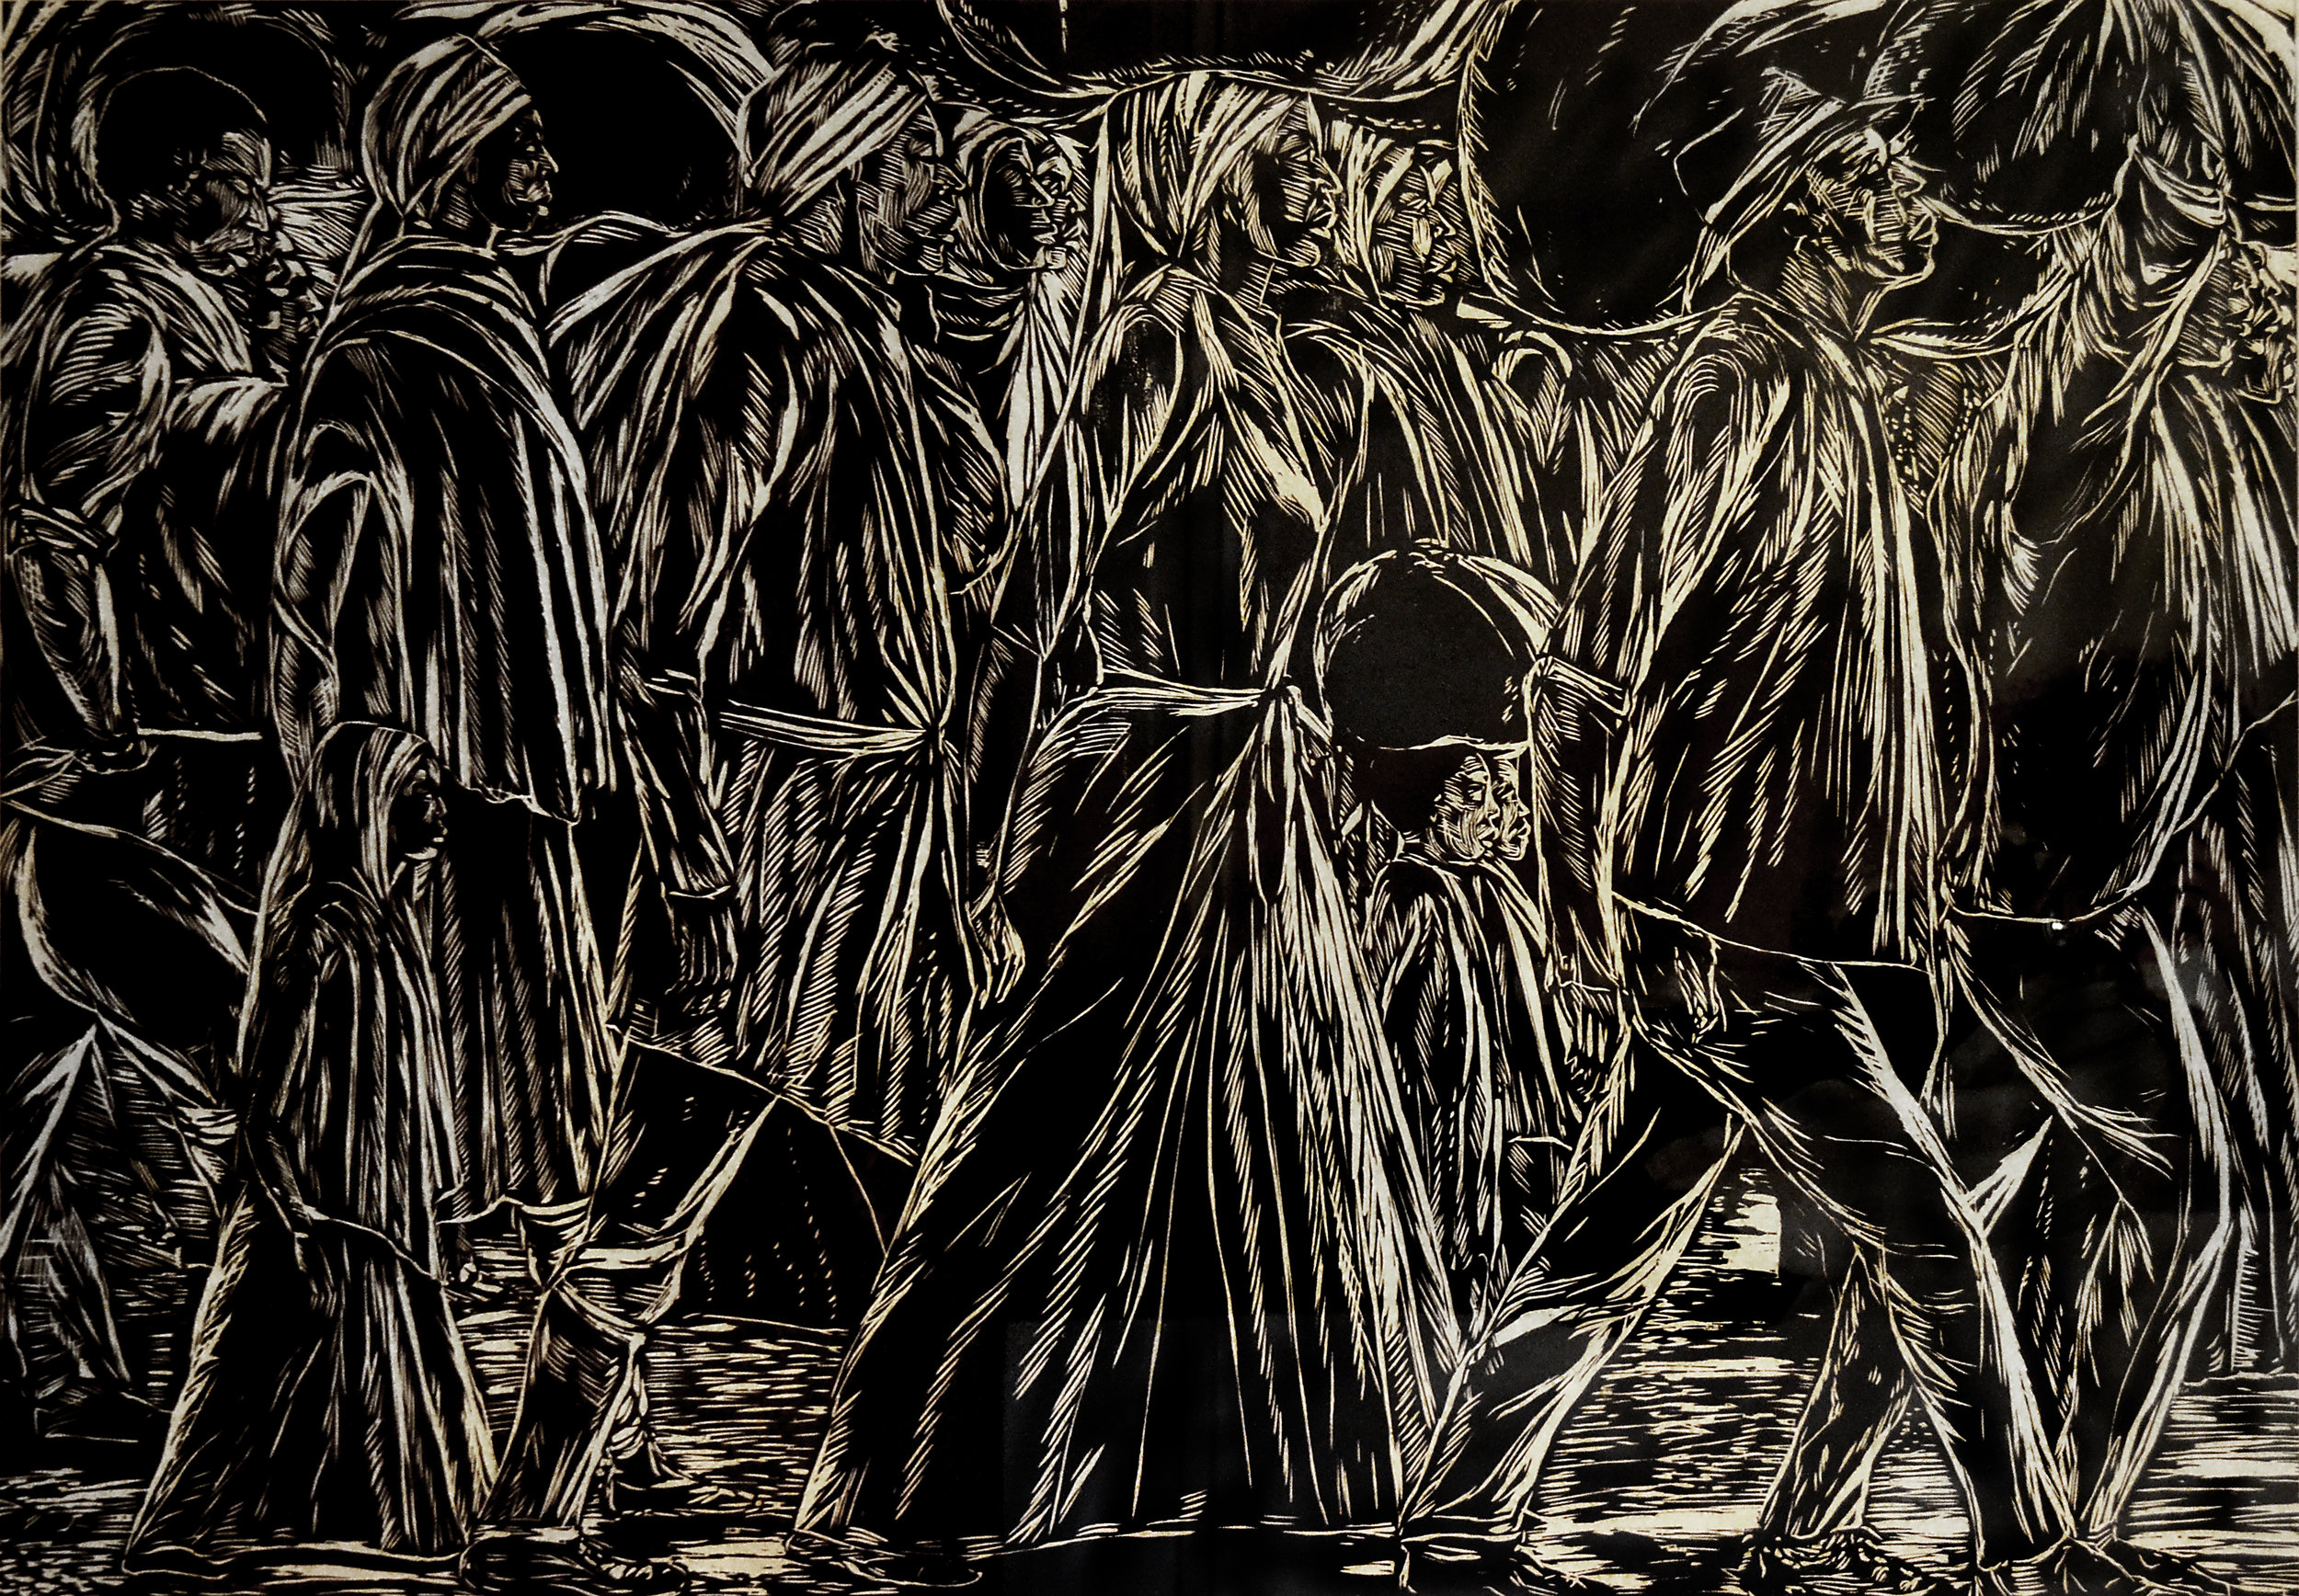 """""""The Immigrants No.3"""" (c1990), Maxwell Taylor, artist's proof woodcut print on paper, 32 x 48. Part of the National Collection."""